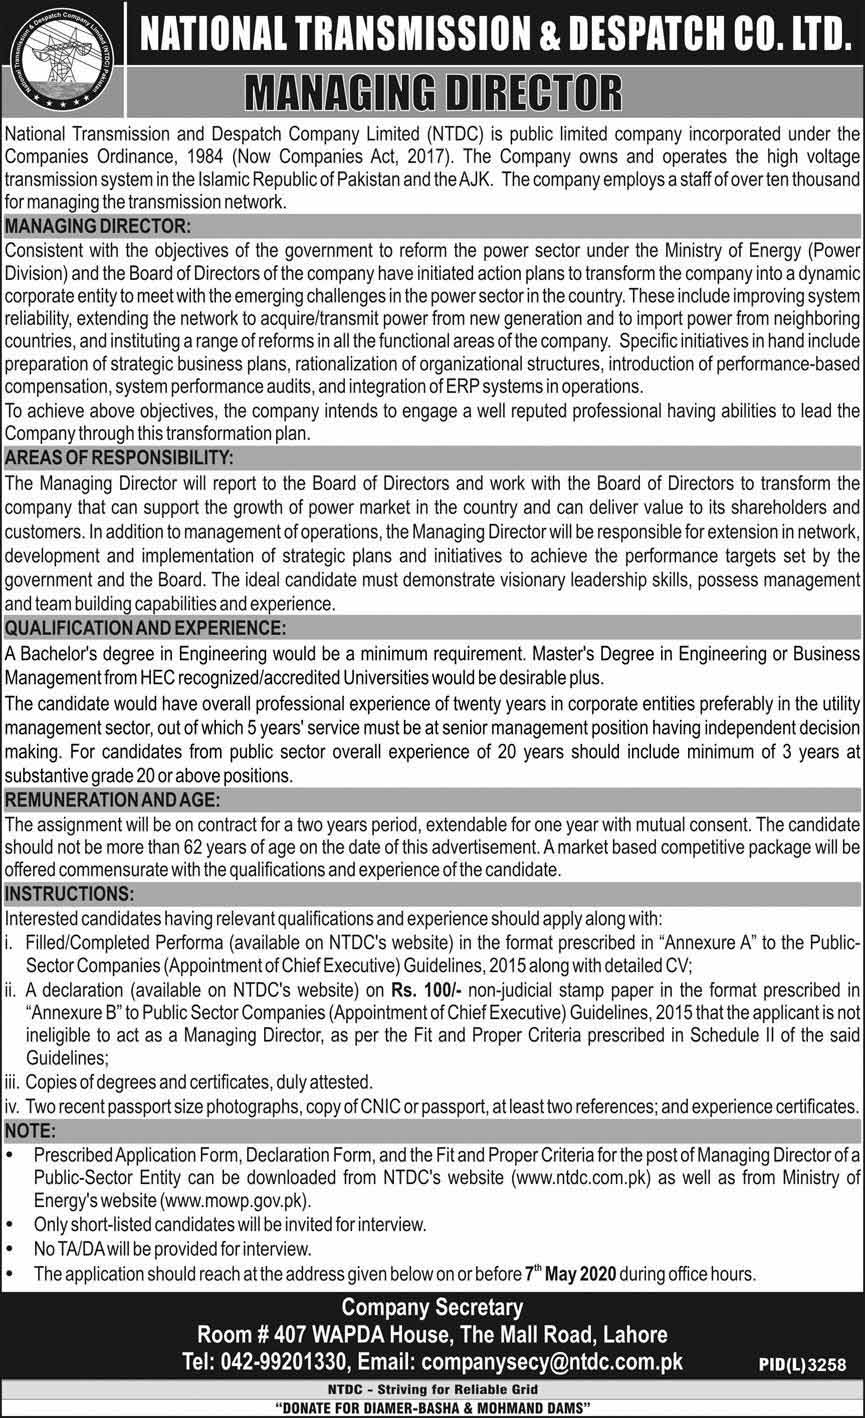 National Transmission and Dispatch Company NTDC Jobs